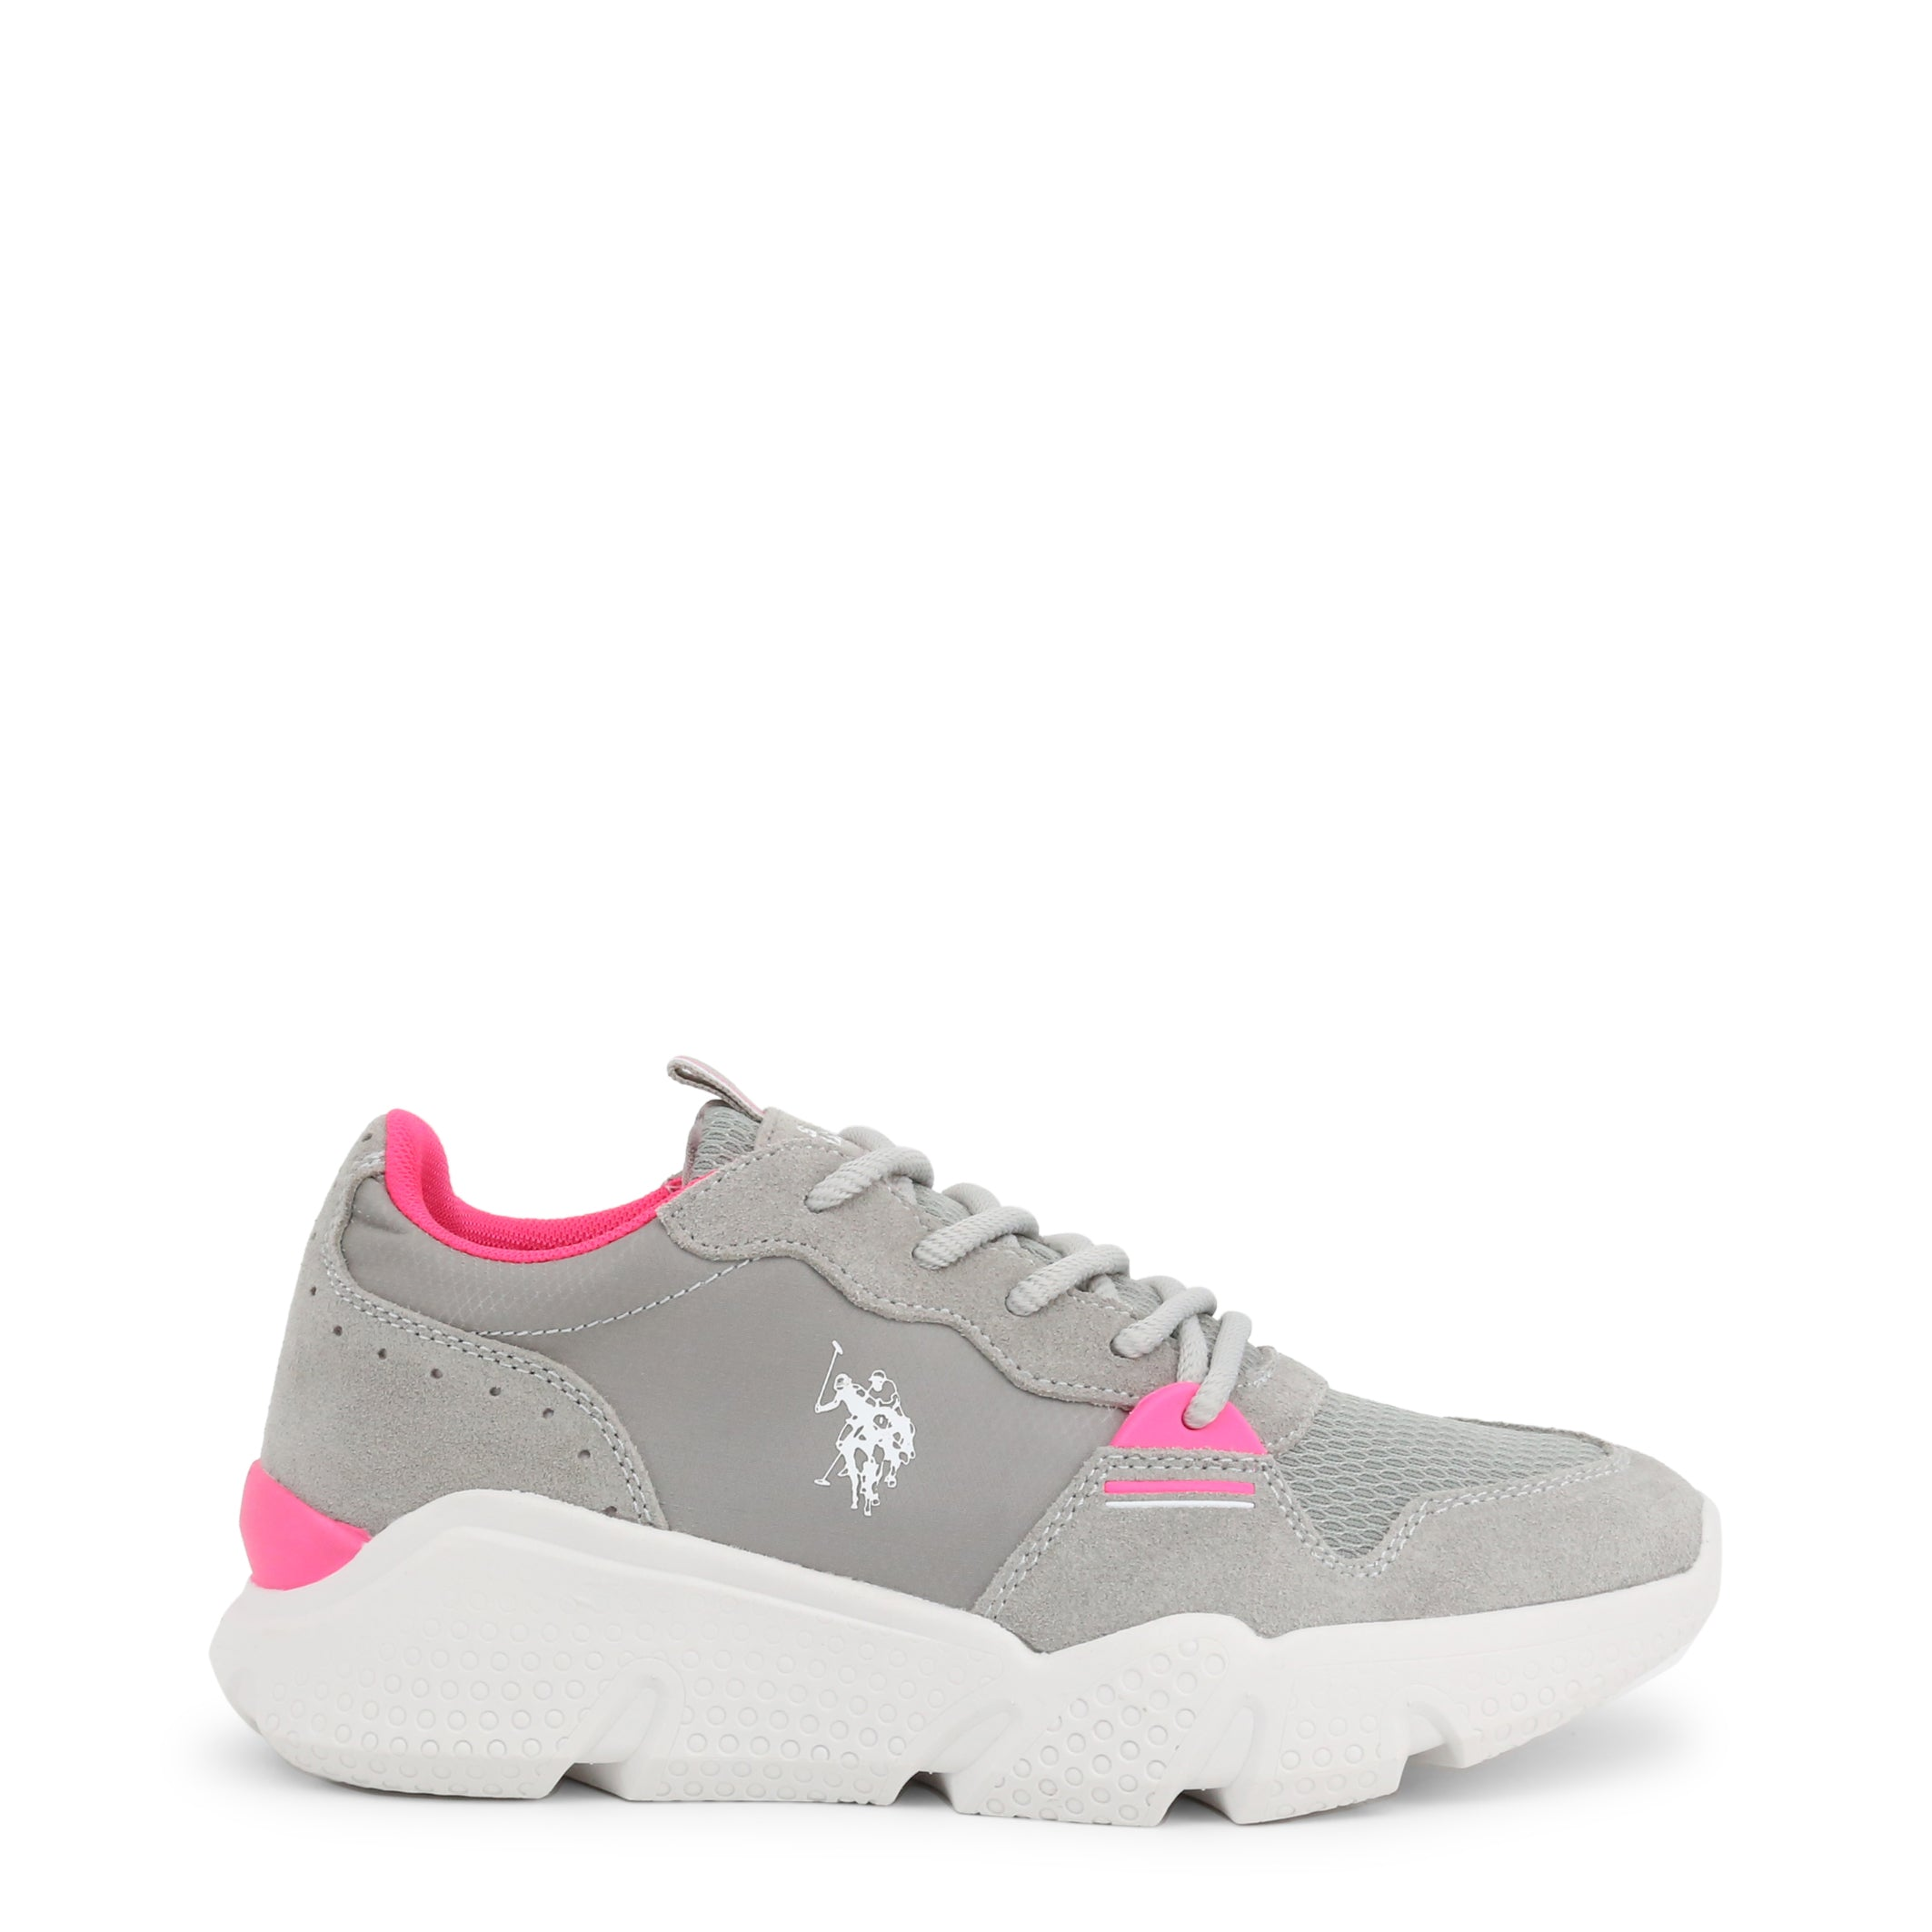 U.S. Polo Assn. - BECKY4144S0_MS1 - Women's Sneakers